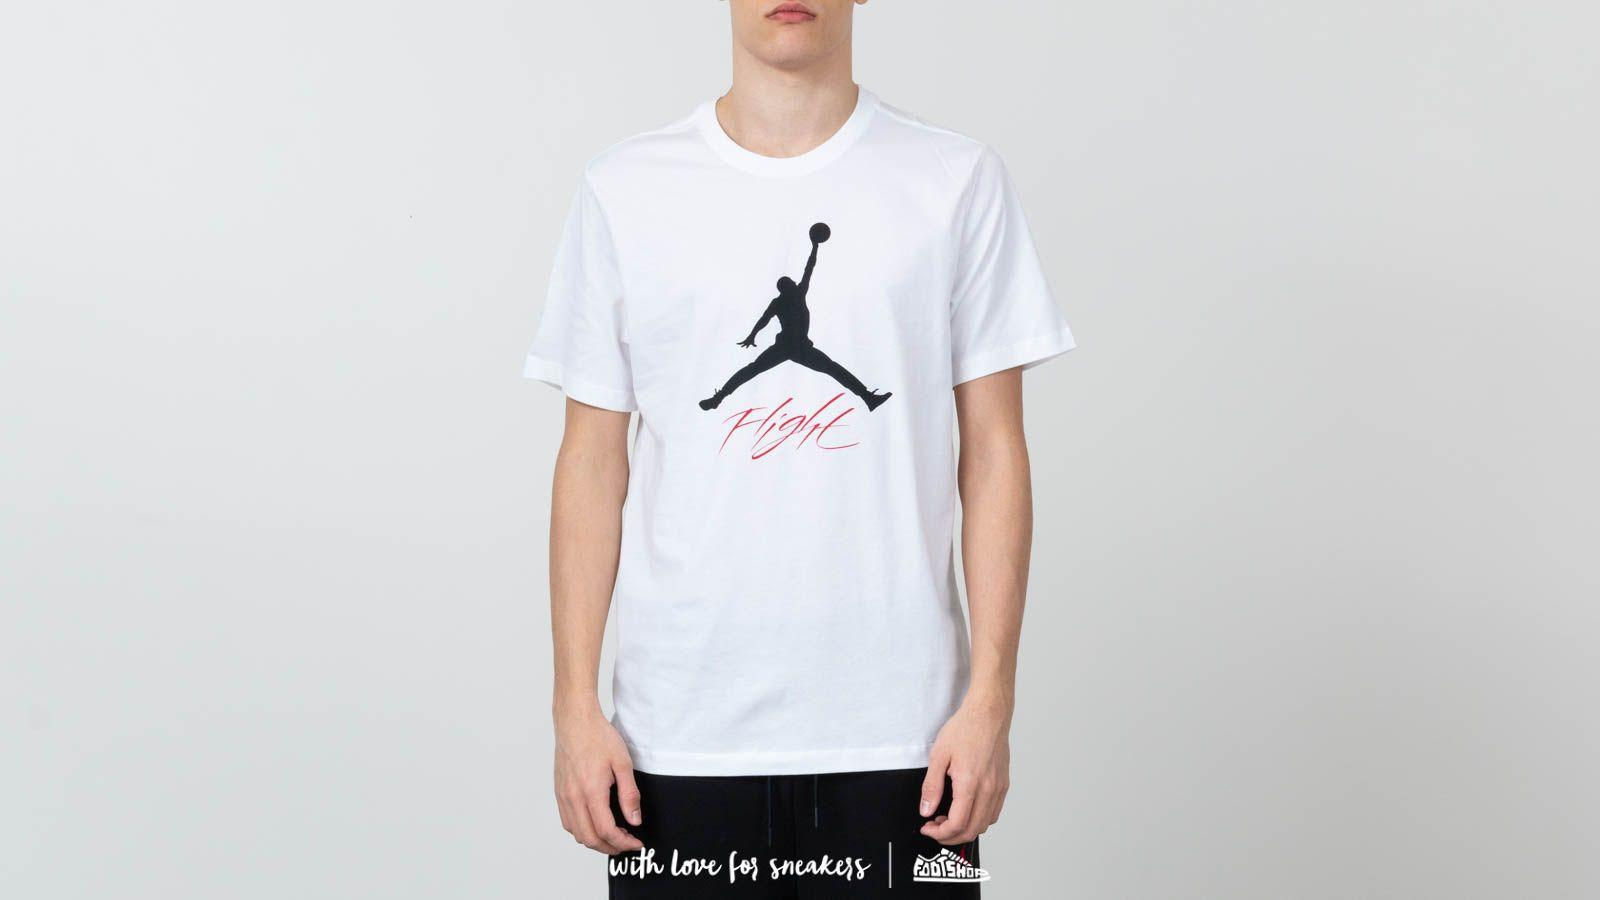 b6f8ac6f6107 Lyst - Nike Air Jumpman Flight Tee White  Black in White for Men